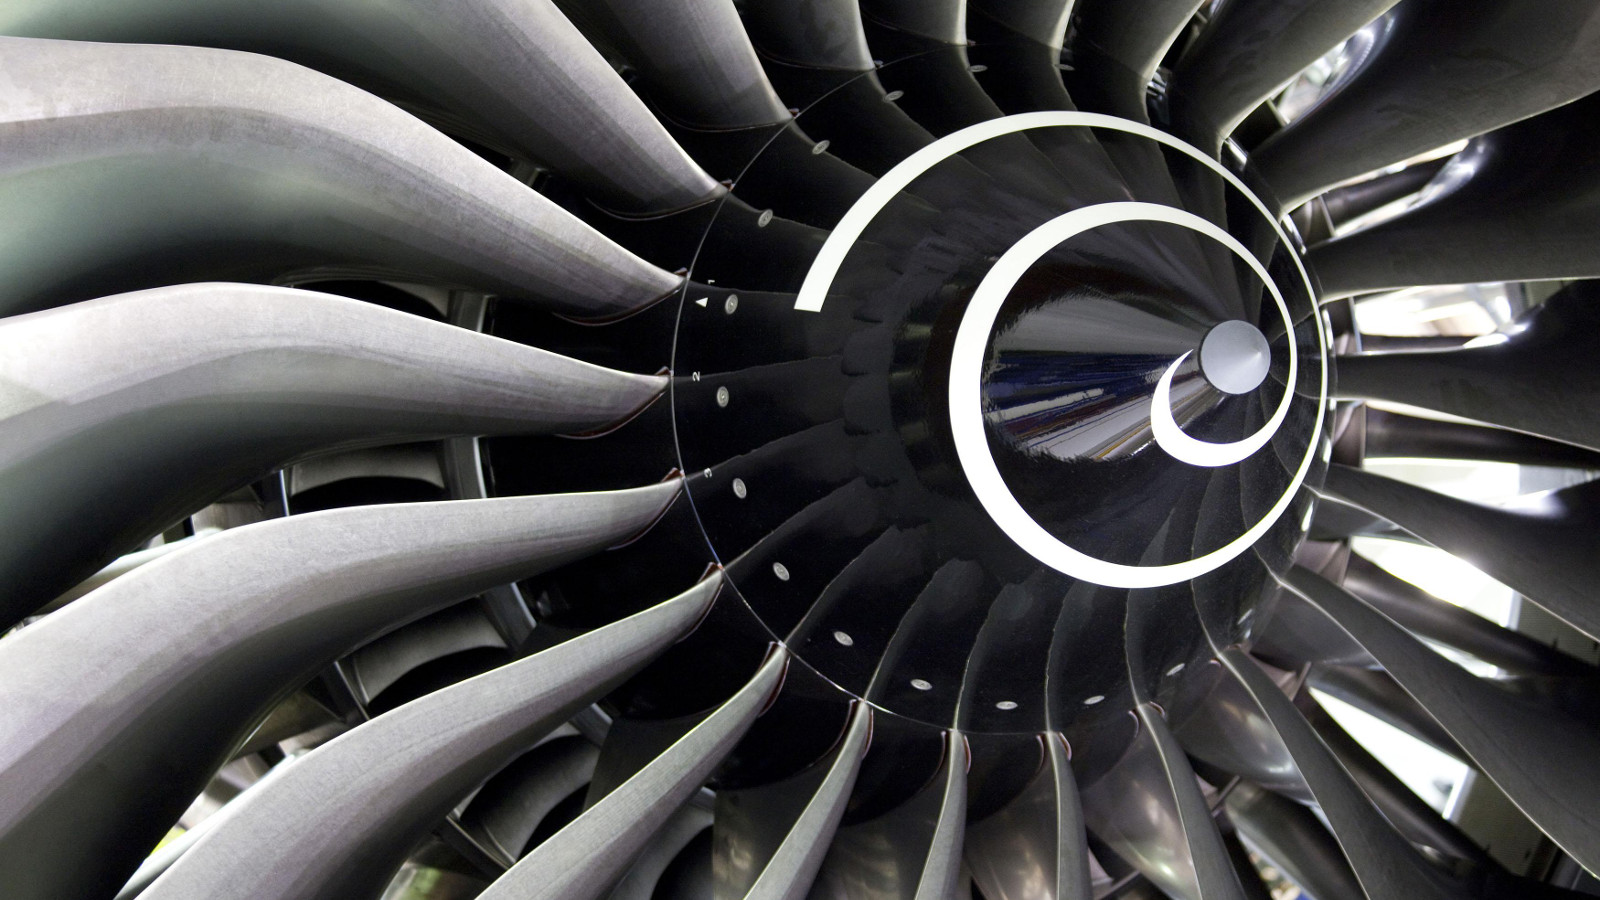 Rolls-Royce Is Going To 3D-Print Its Aeroplane Engine Parts